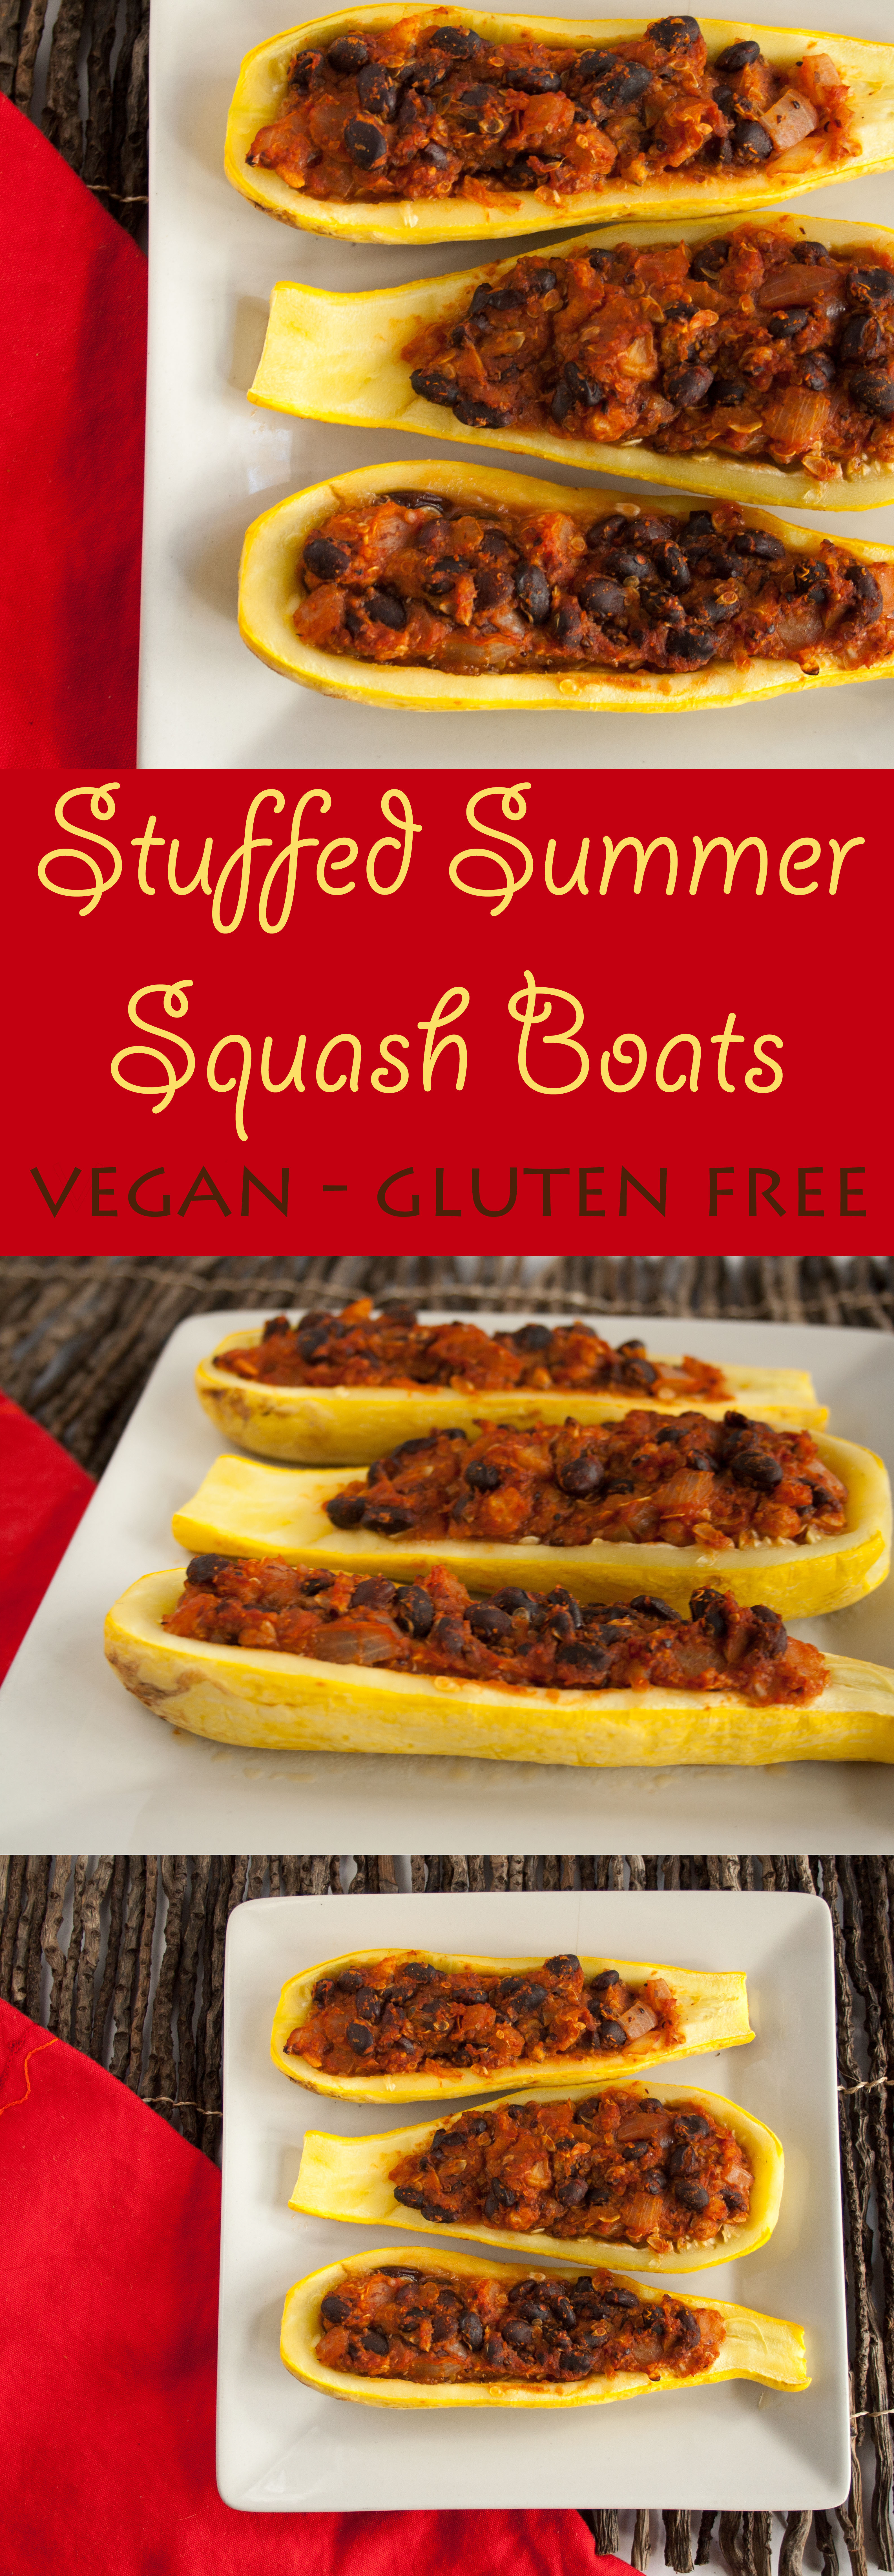 Stuffed Summer Squash Boats collage photo with text.